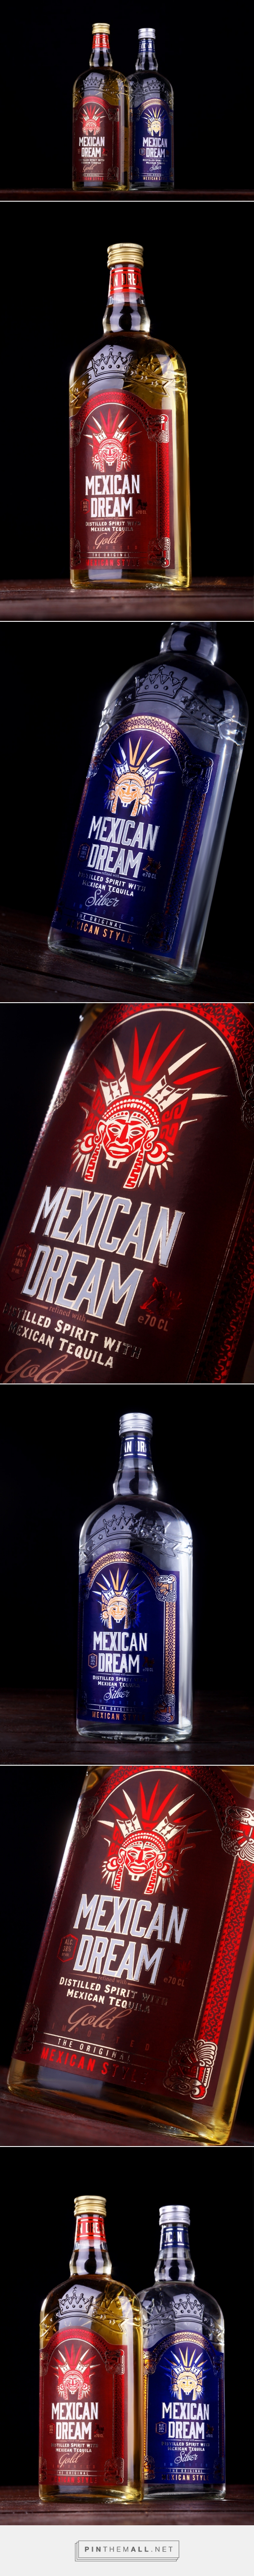 Mexican Dream - Packaging of the World - Creative Package Design Gallery - http://www.packagingoftheworld.com/2016/01/mexican-dream.html